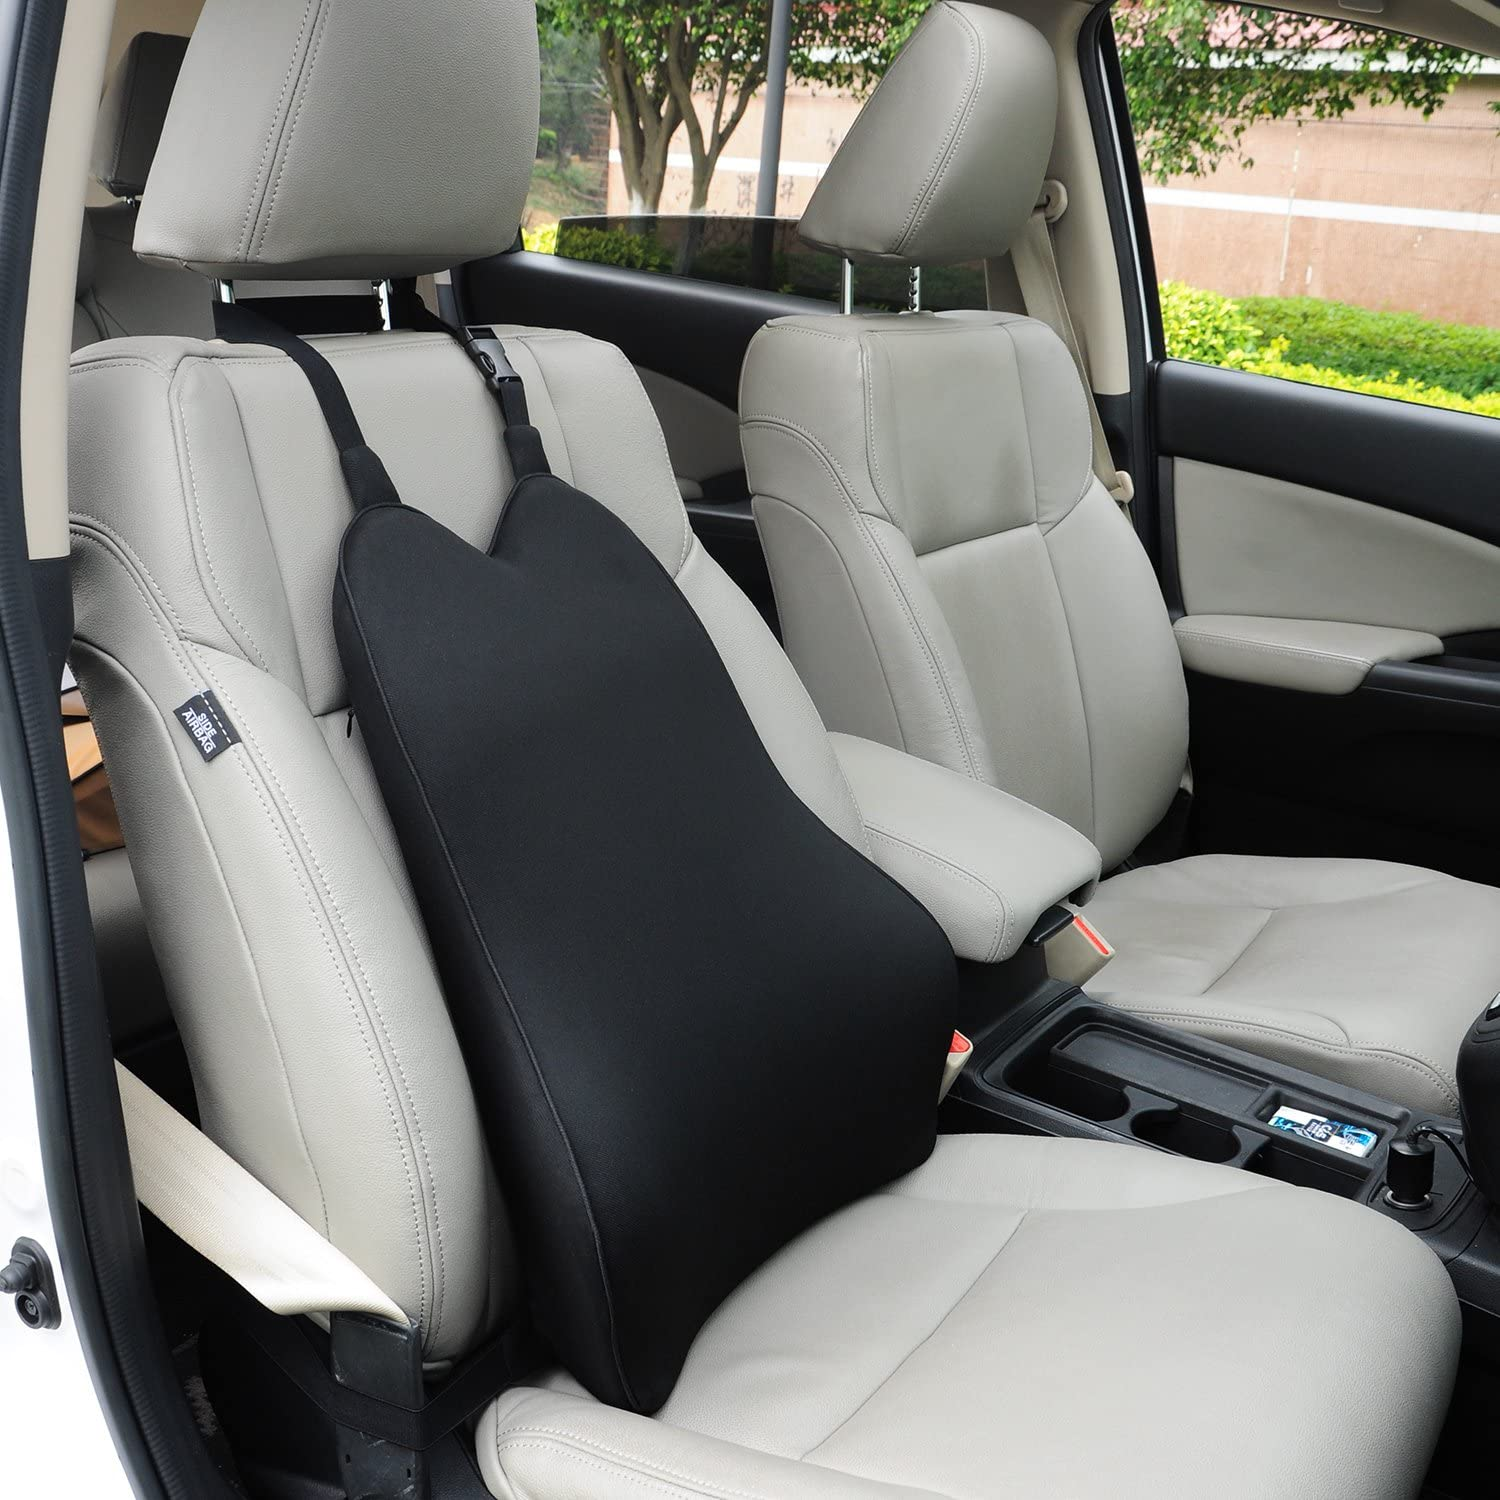 Black seat cushion on the passenger seat fo a car